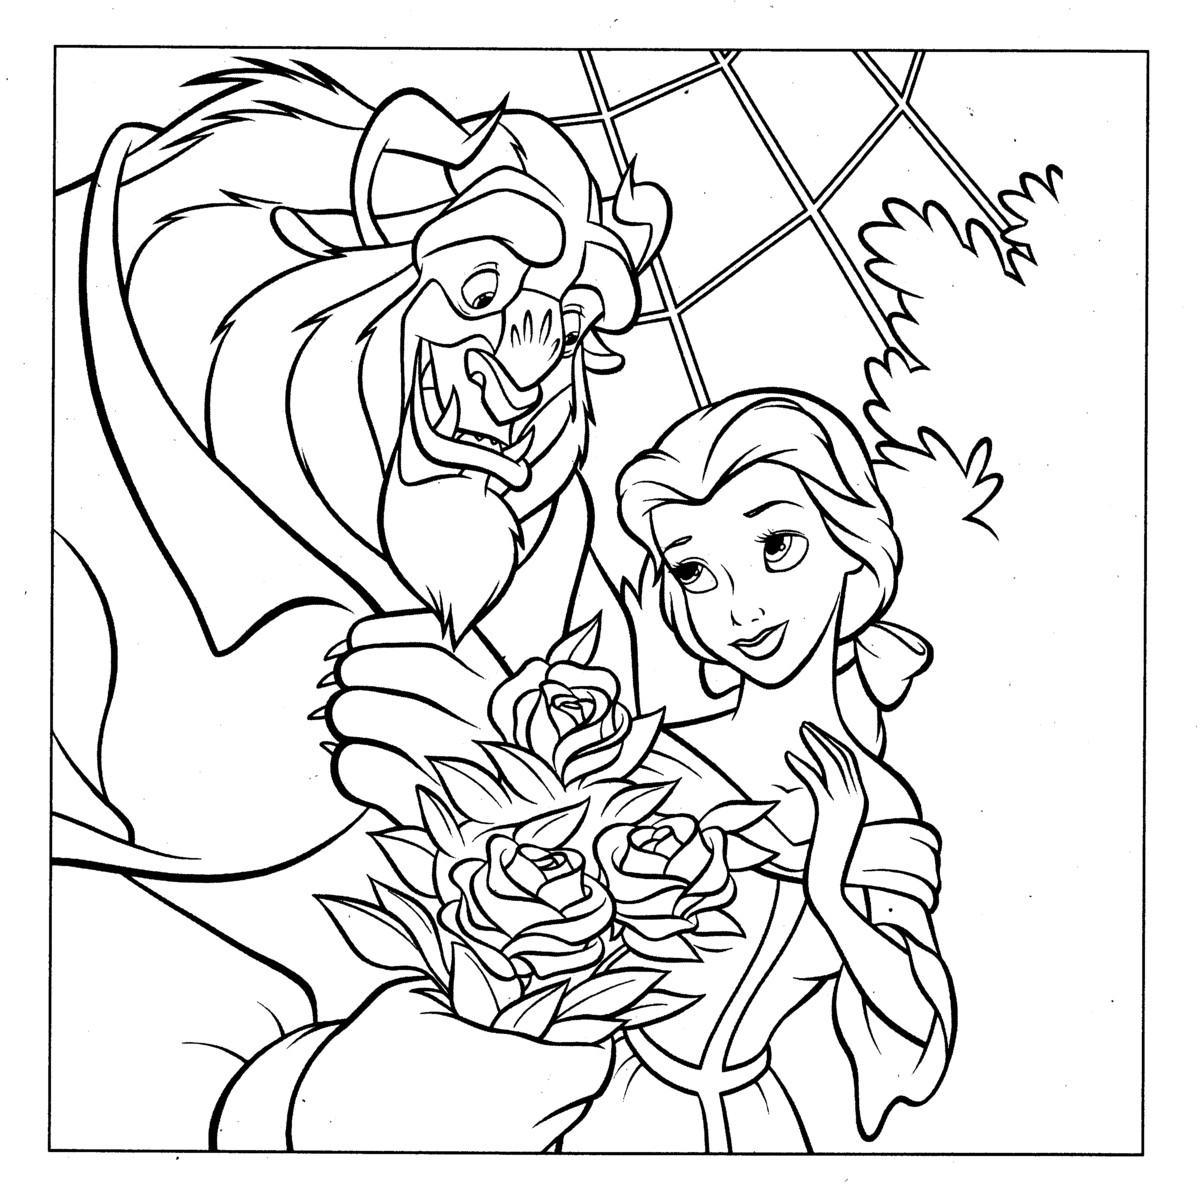 Coloring Pages Disney Color Pages To Print disney coloring pages 21 kids download print